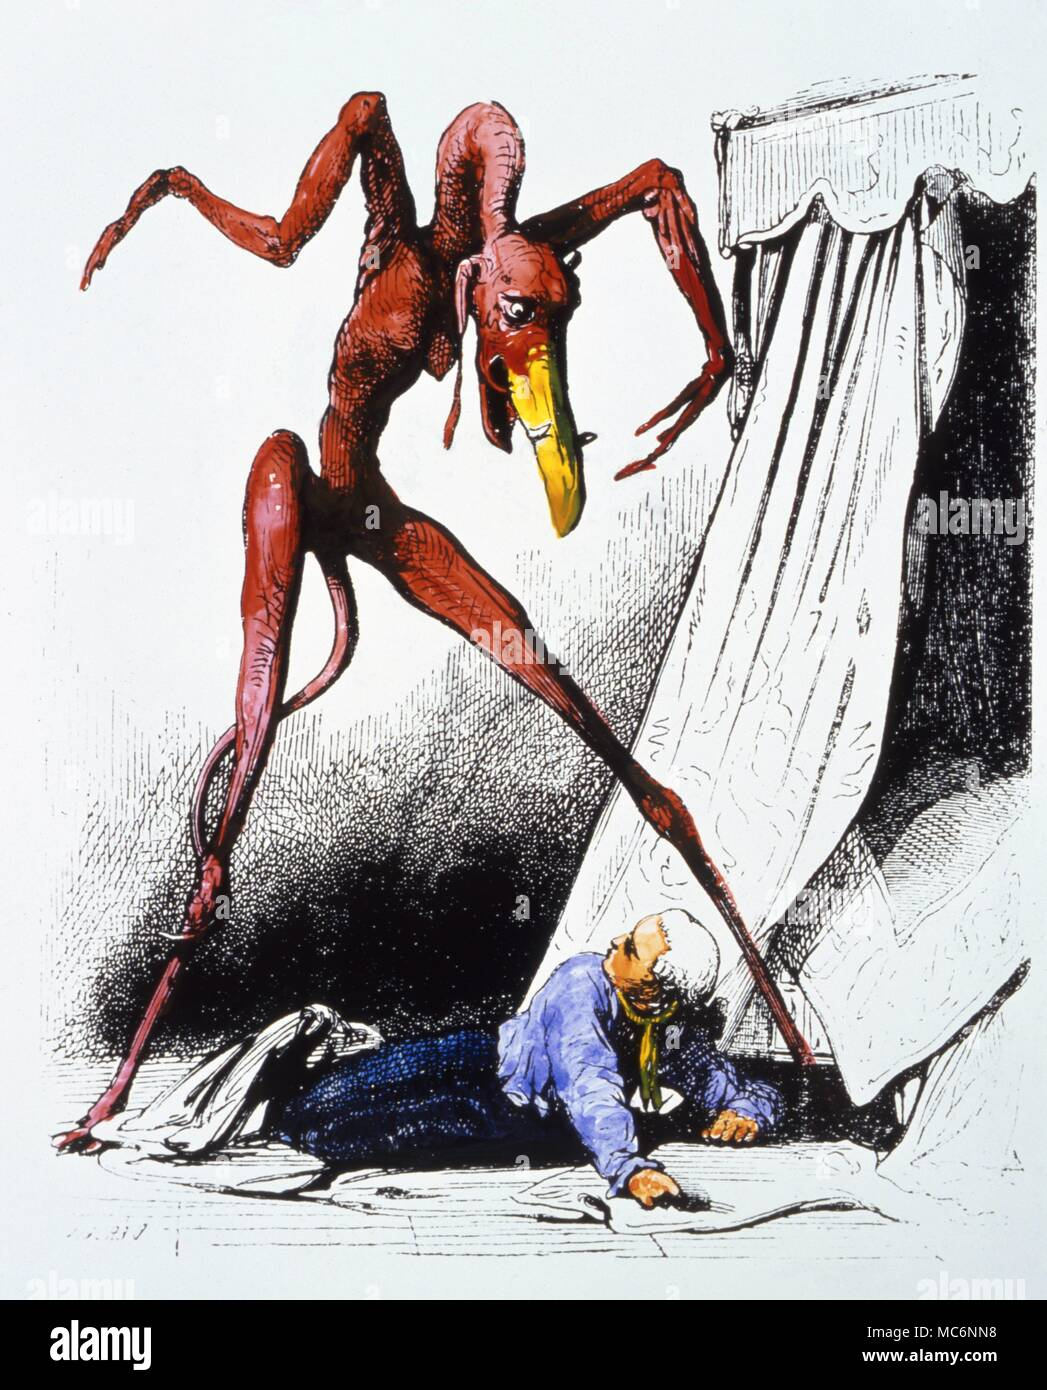 Demon used as a woodengraving illustration by Collin de Plancy in his 'Dictionnaire Infernal' of 1863, but derived from a painting by Salvator Rosa, 'The Nightmare.' - Stock Image